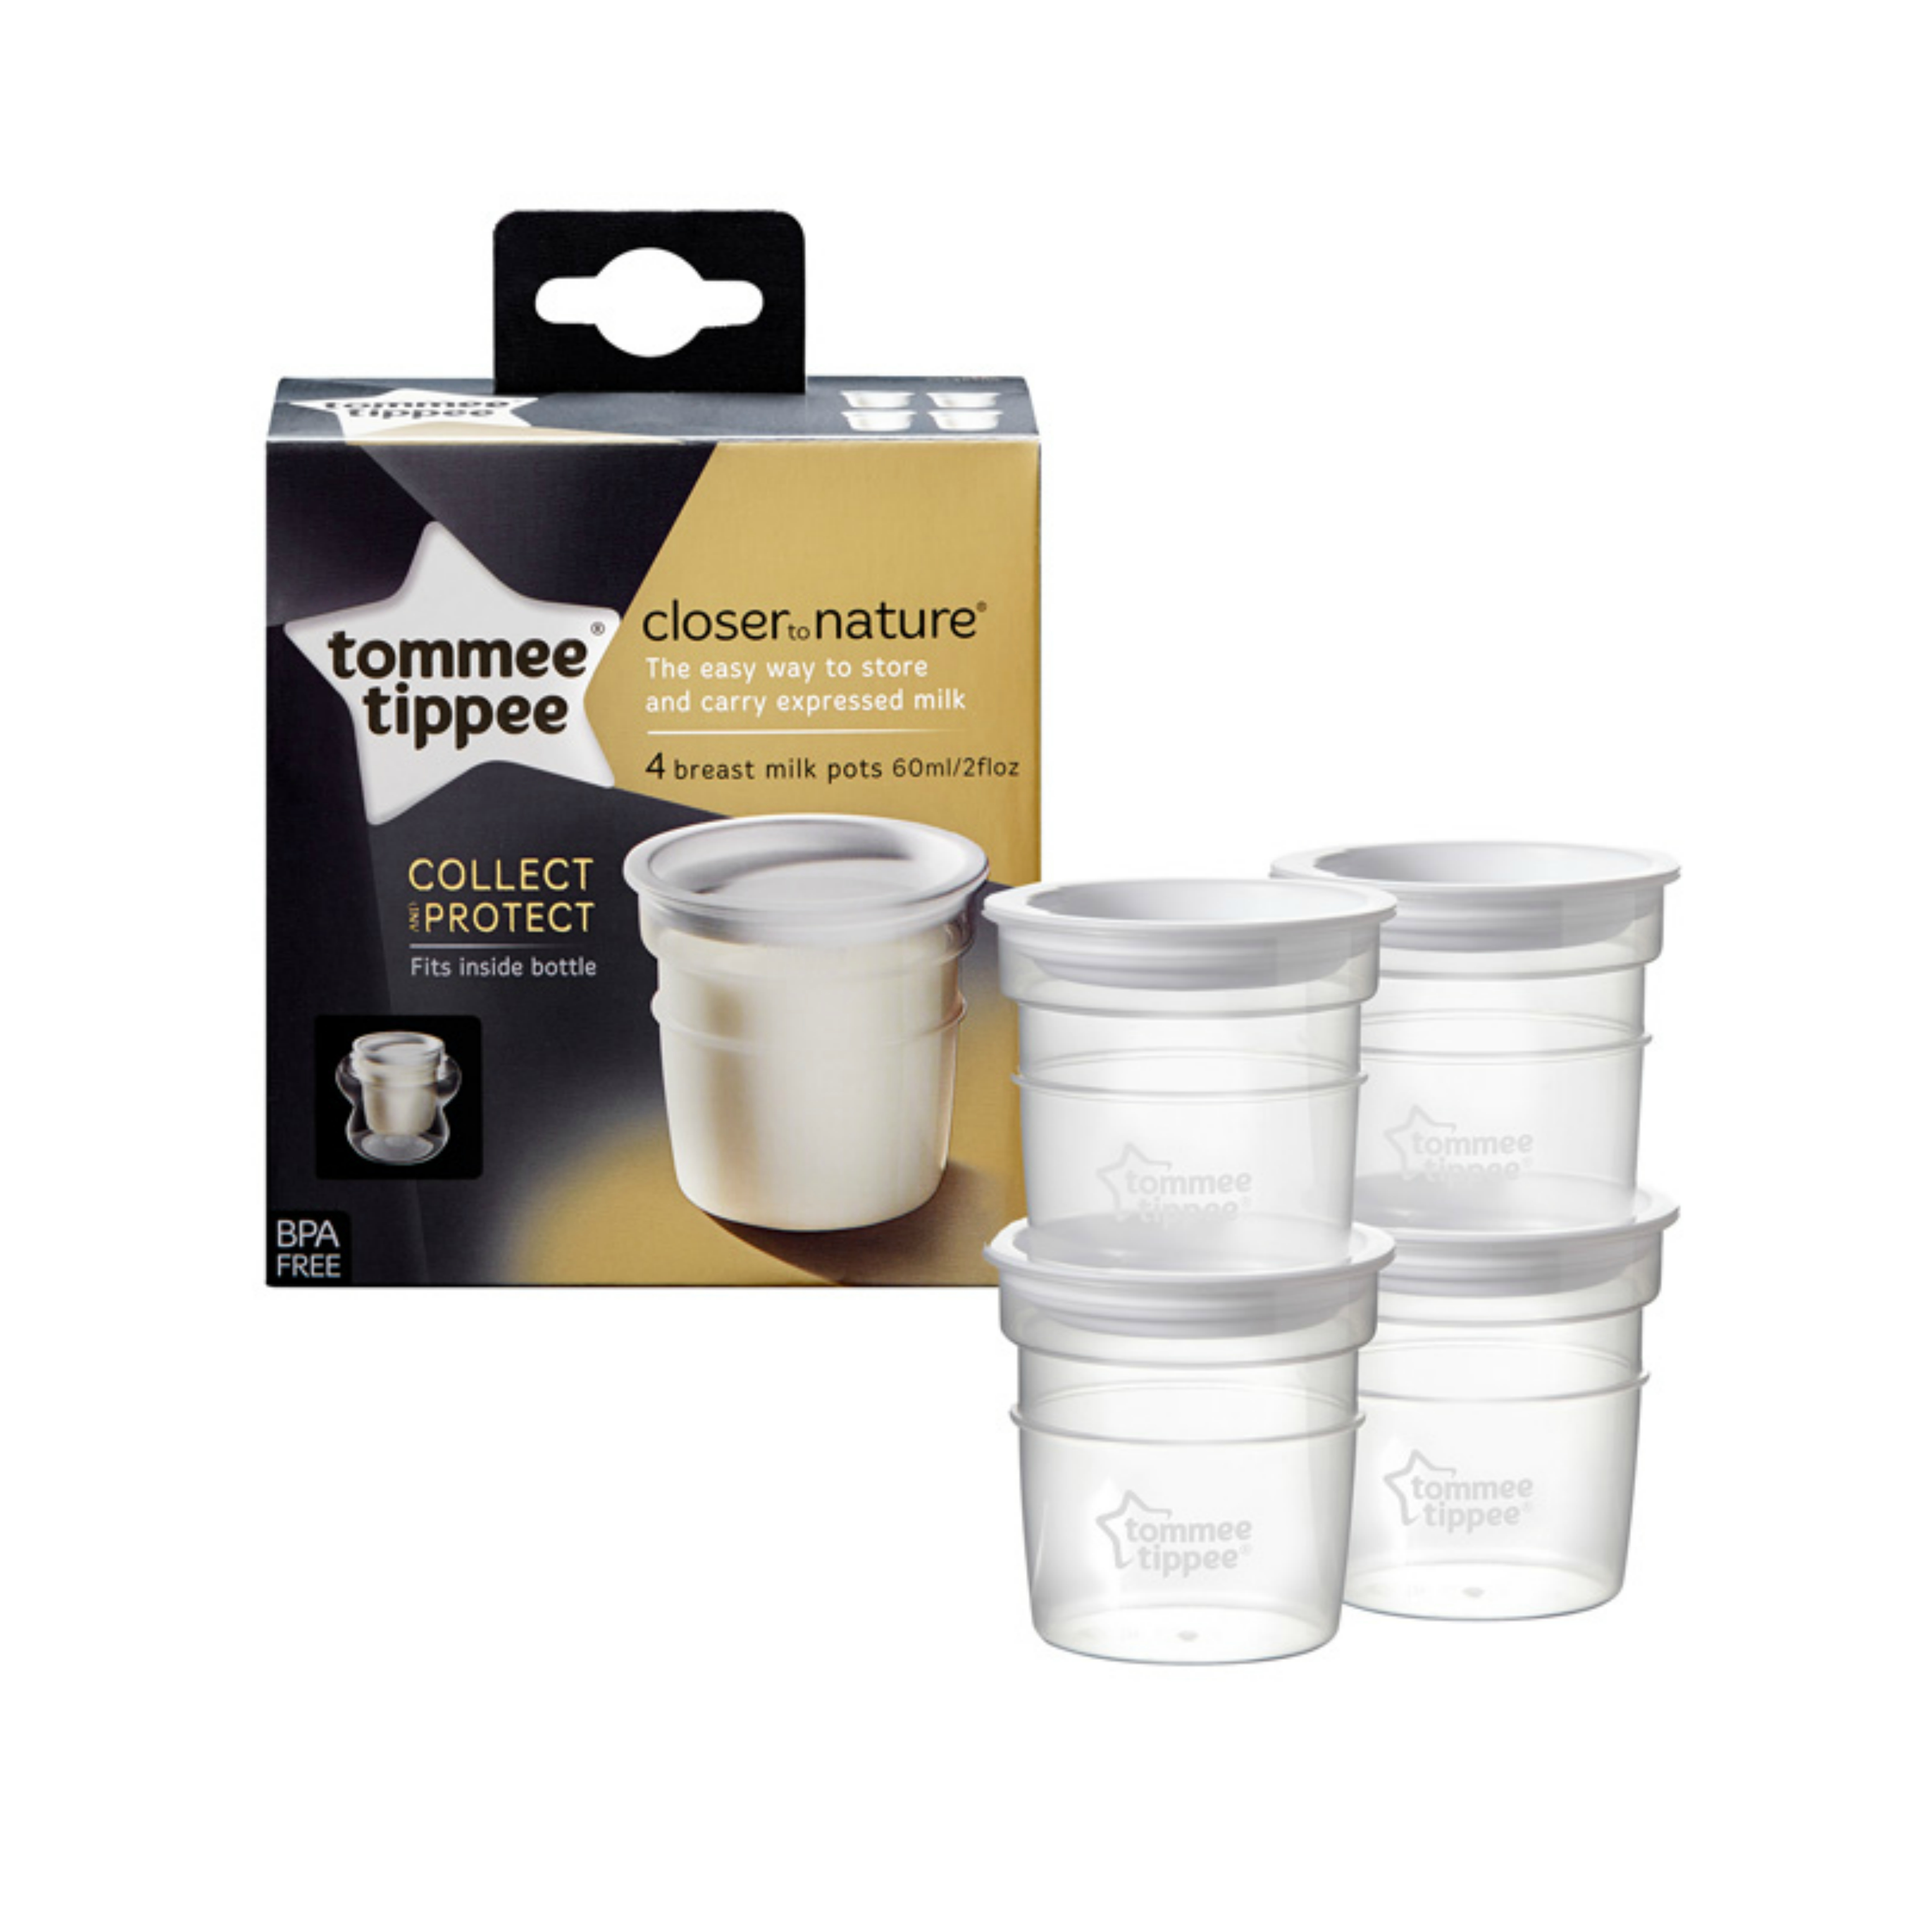 Tommee Tippee Closer to Nature Breast Milk Storage Containers 4Pk | Pots | In Fridge | New